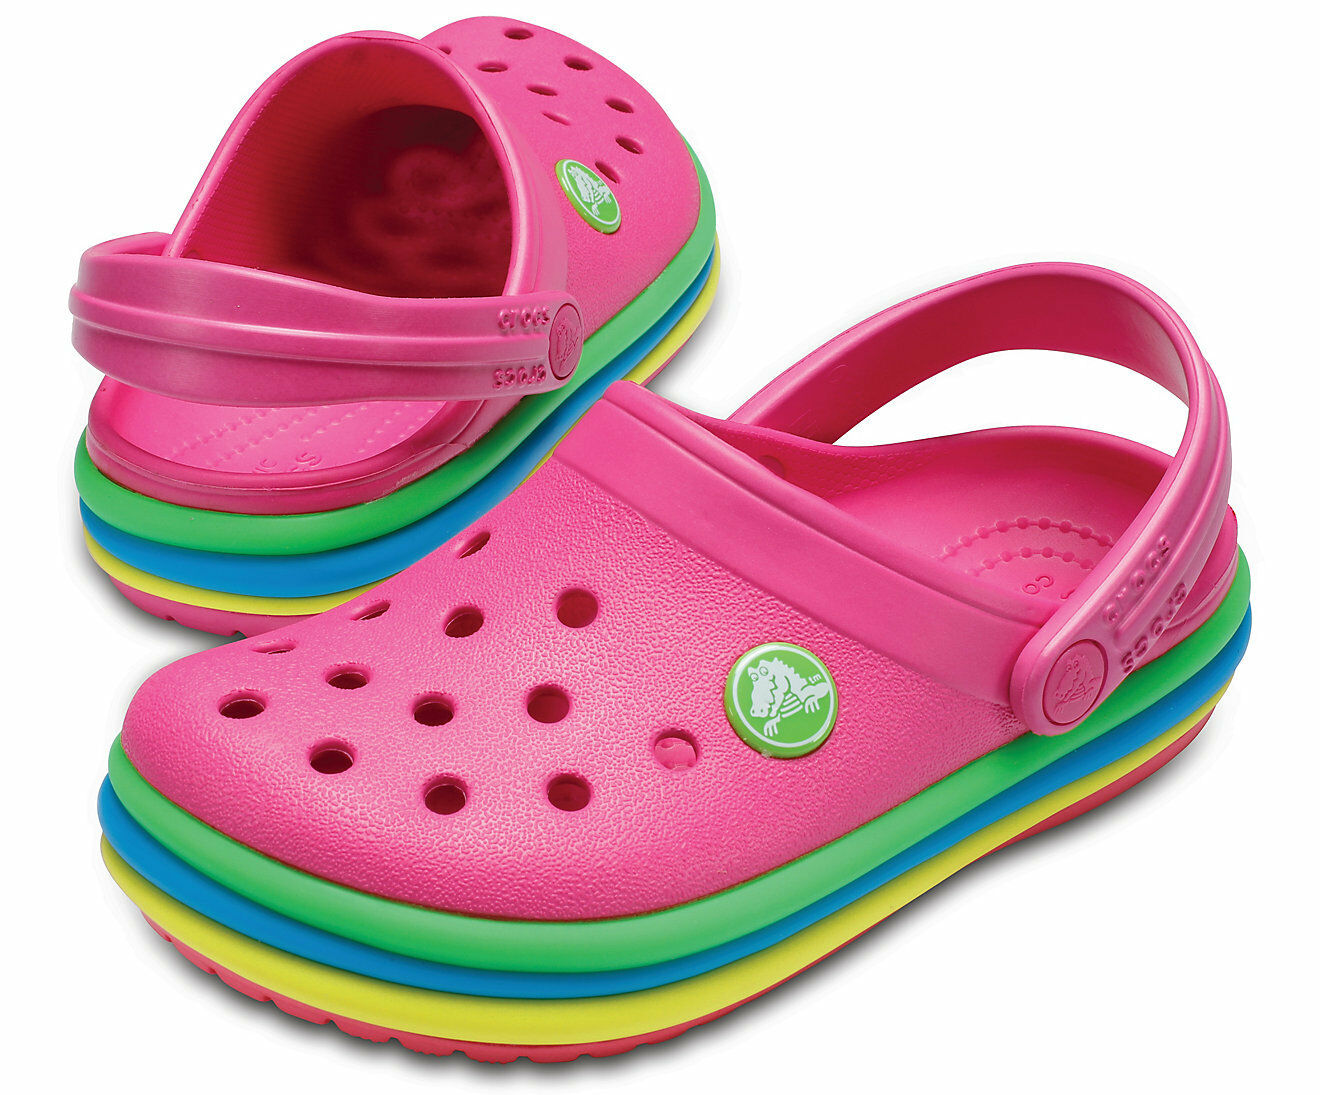 70af5a723 Crocs Crocband Rainbow Band Clogs Kids Childrens Clog Shoes Summer Casual  Pink